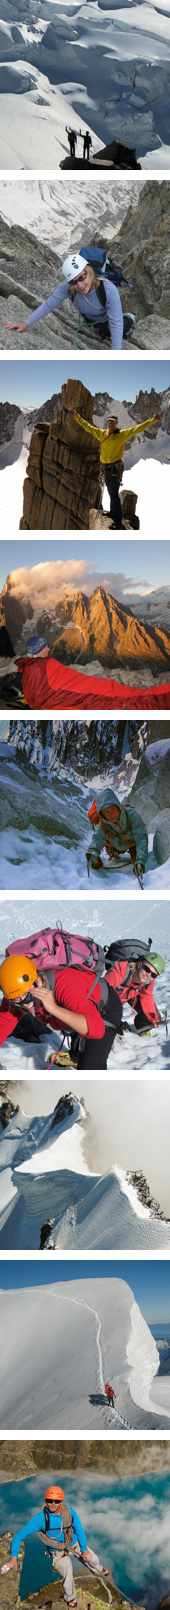 guided mountaineering chamonix